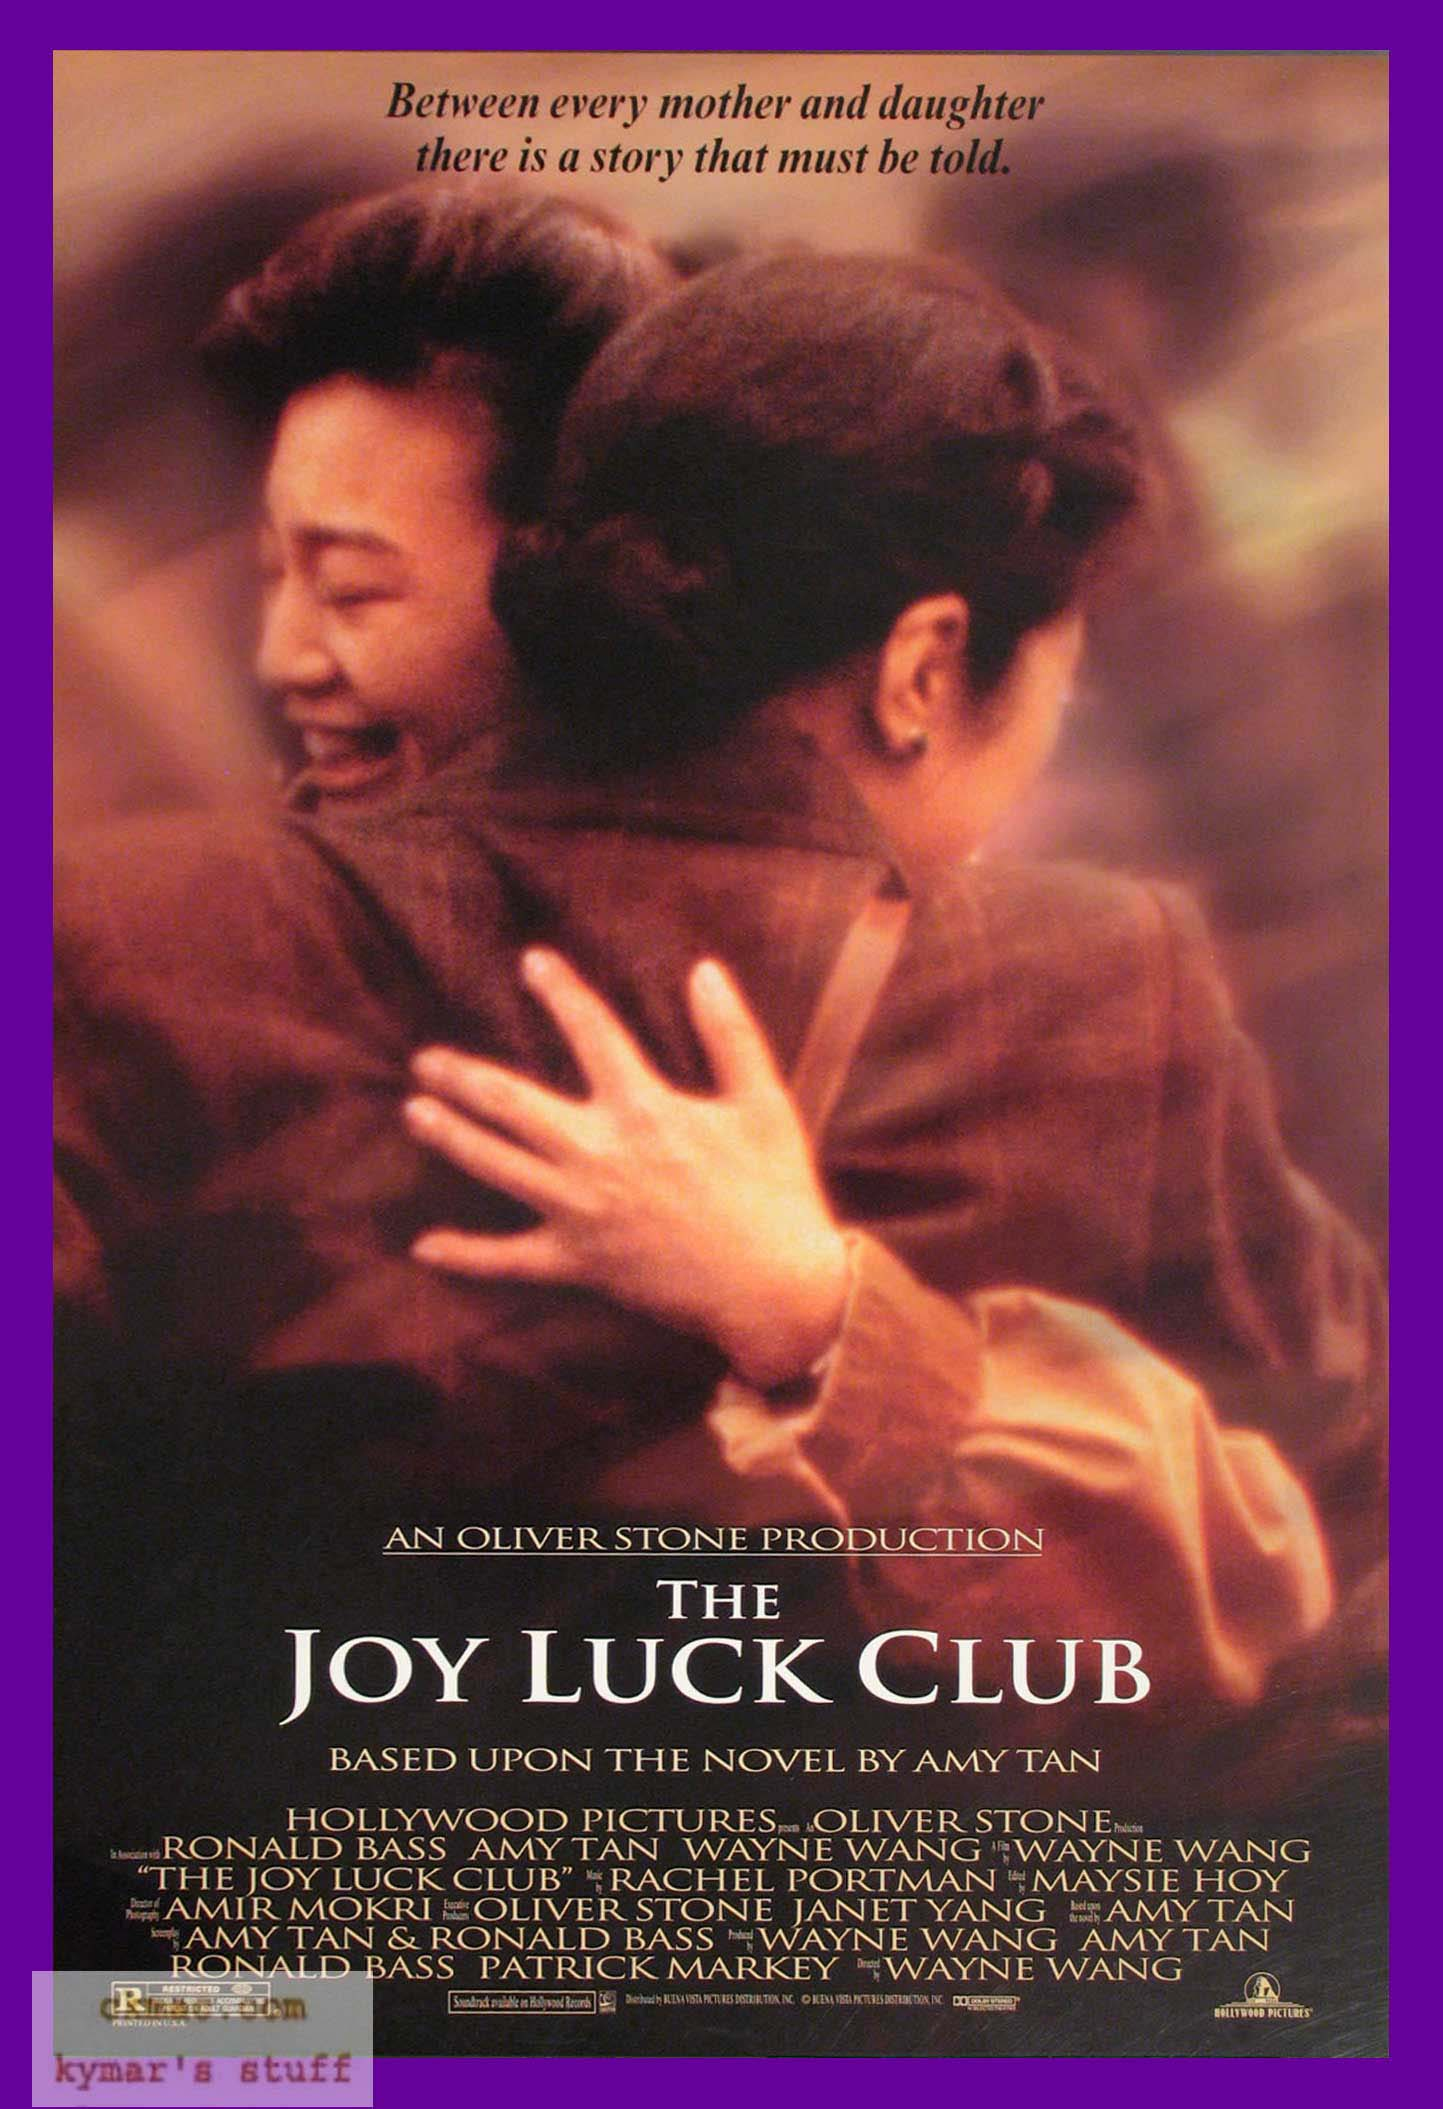 the joy luck club novel joy luck club the joy luck clubamy tan joy luck club 1993 movie the joy luck club